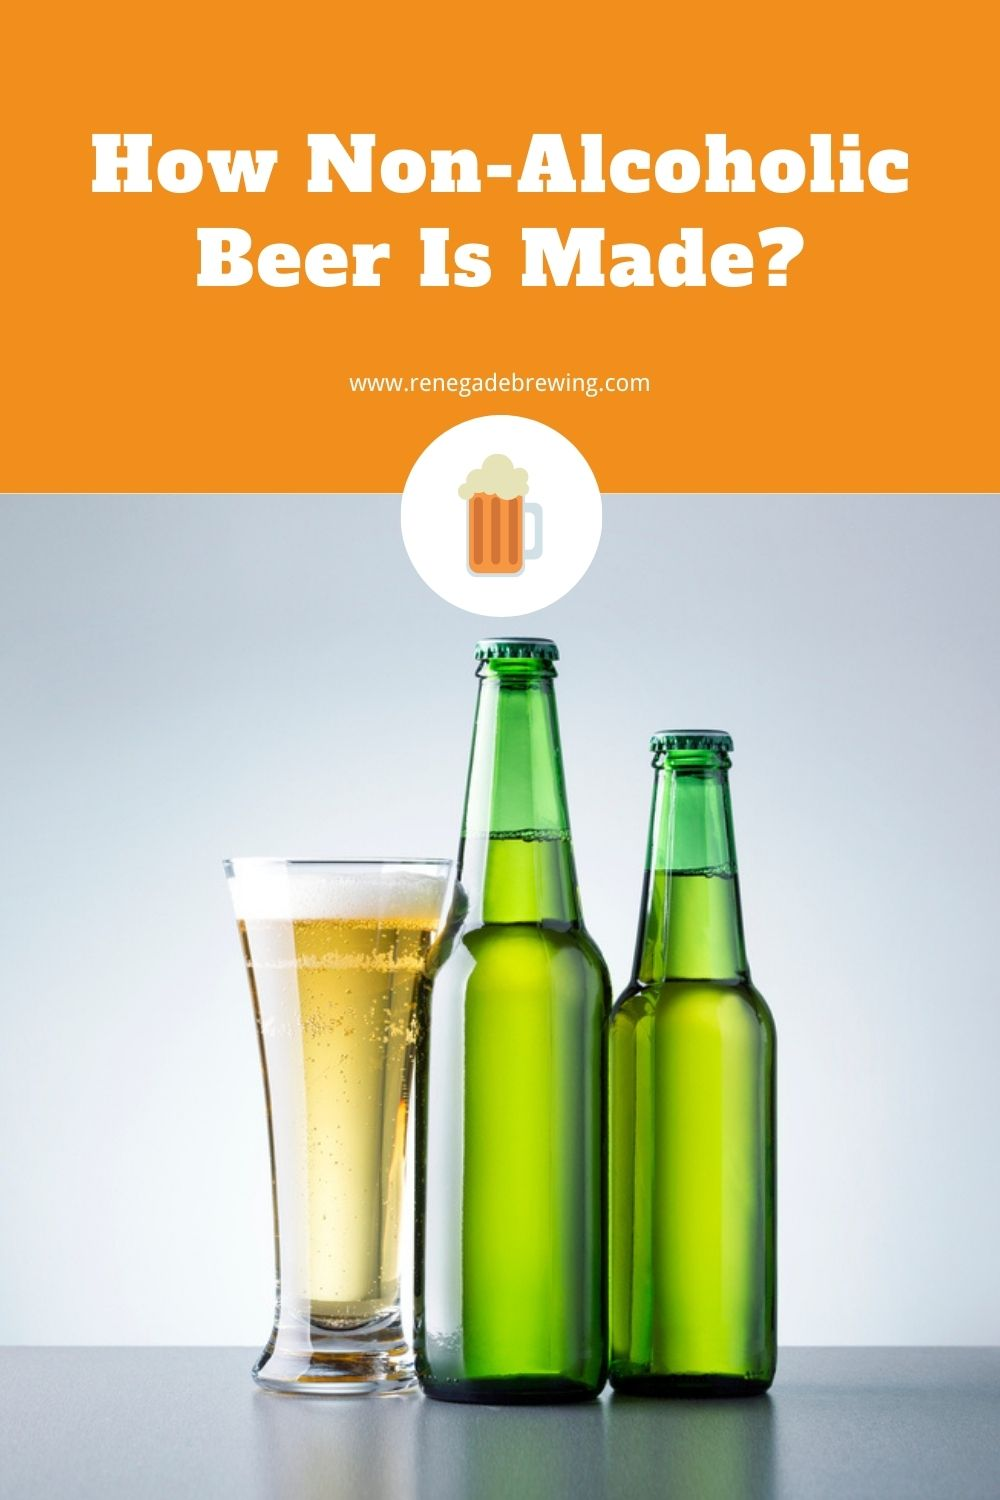 How Non-Alcoholic Beer Is Made 1